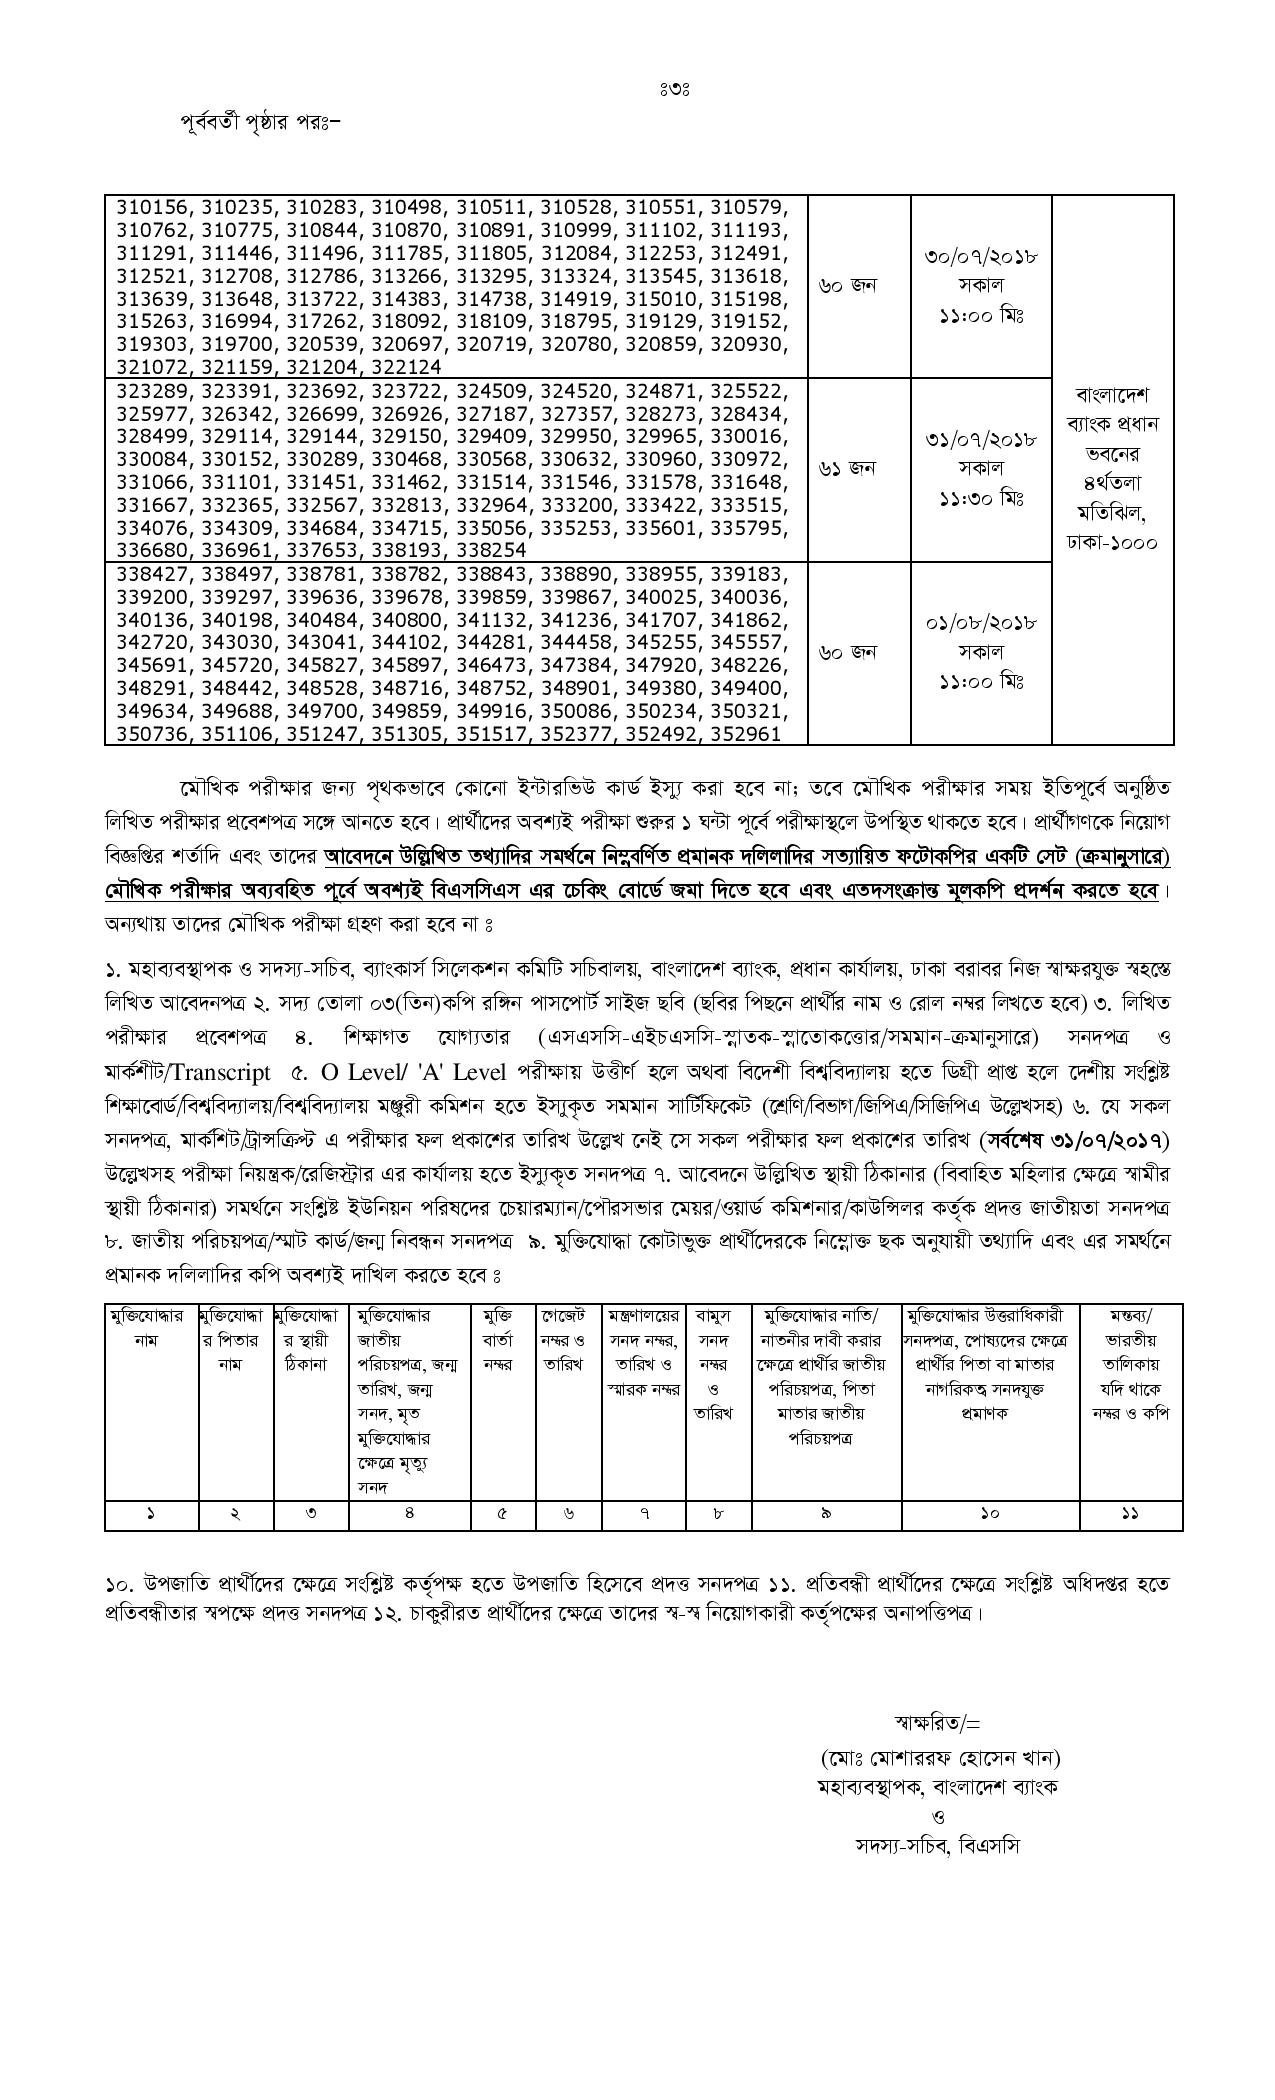 Rupali Bank Limited Exam Result 2018 - dailyjobsbd